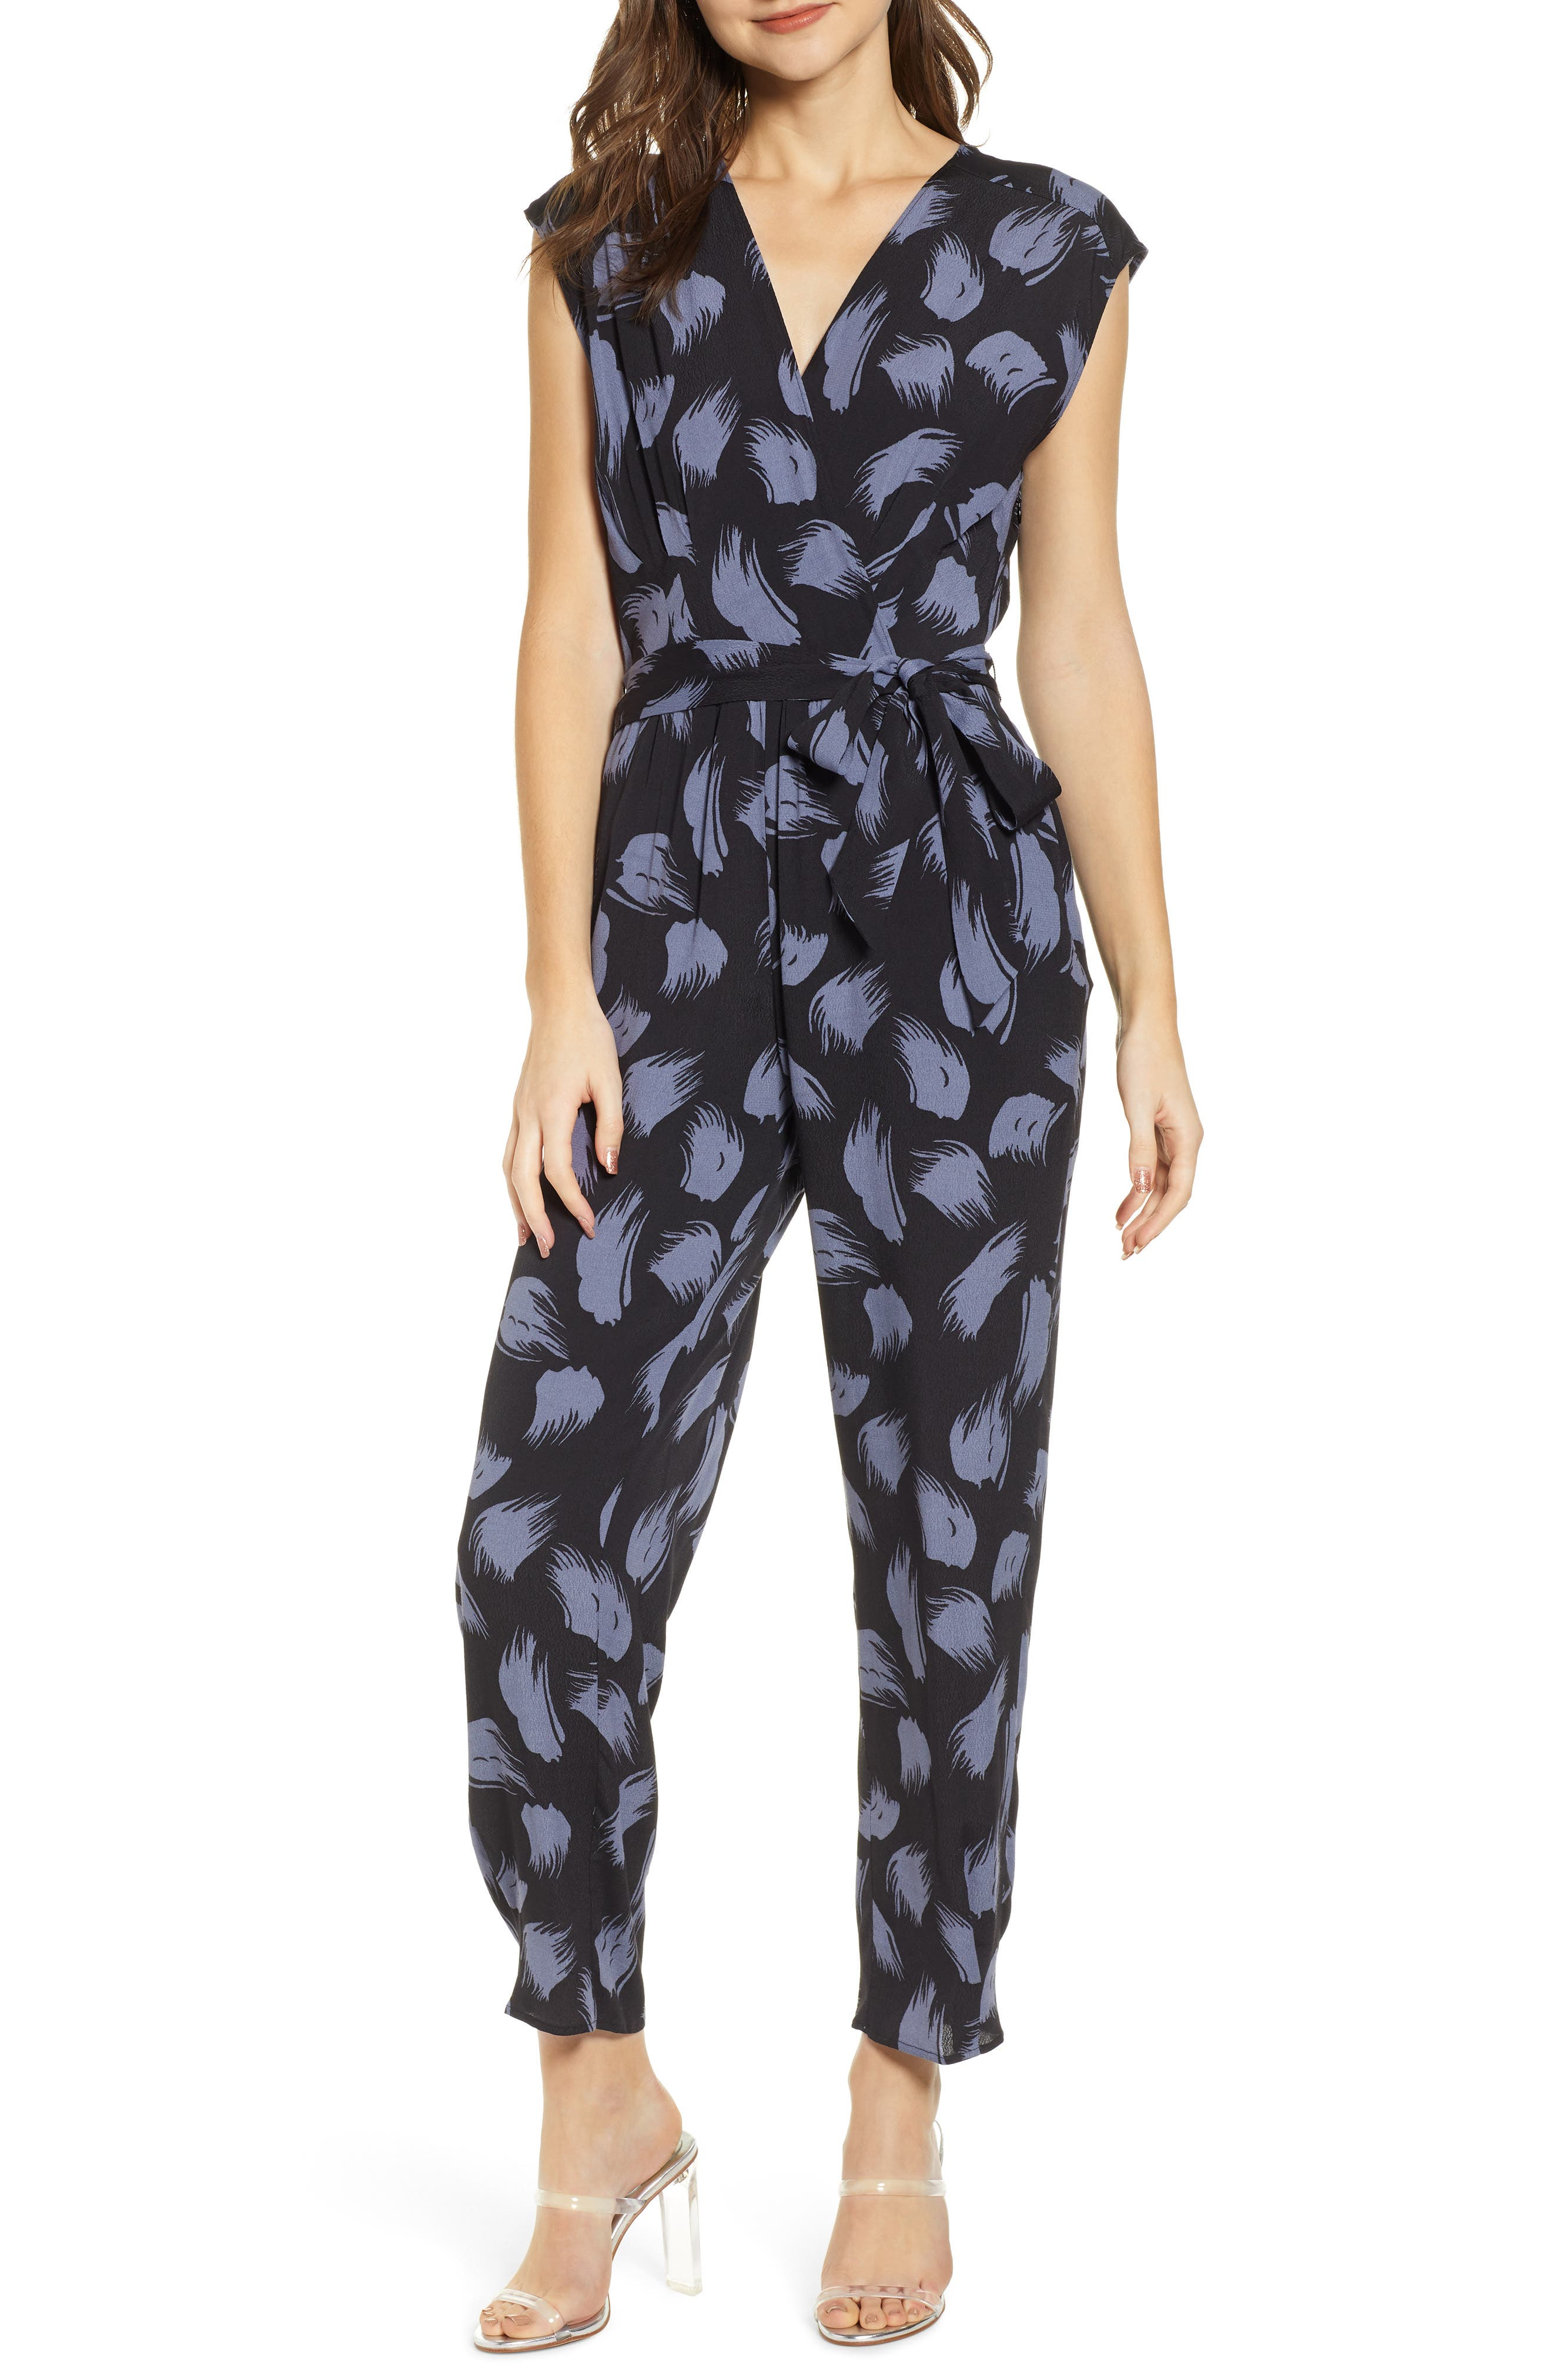 43f8947875f3 Women s Rompers   Jumpsuits Sale